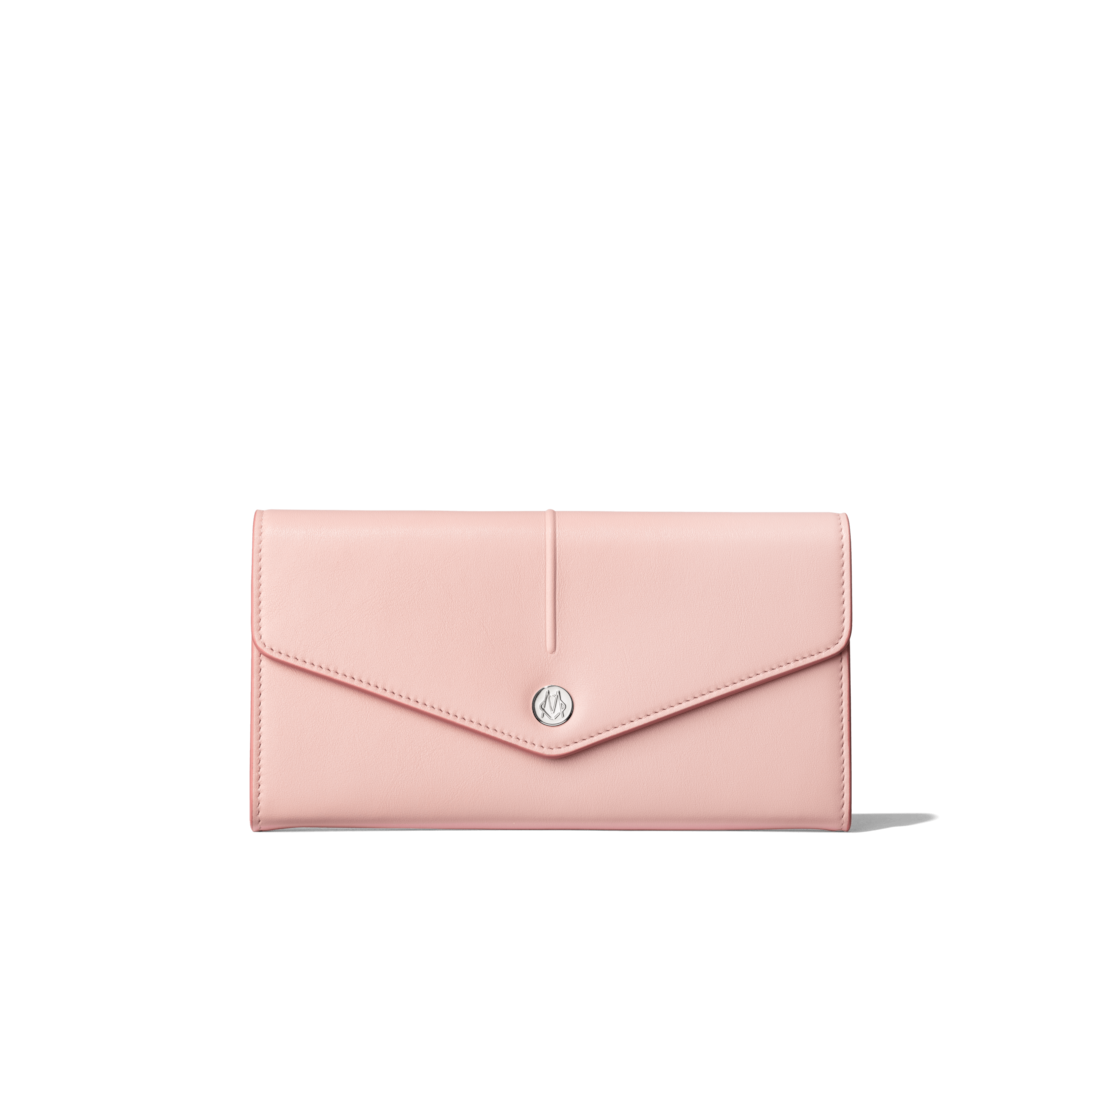 Portefeuille enveloppe - accessories